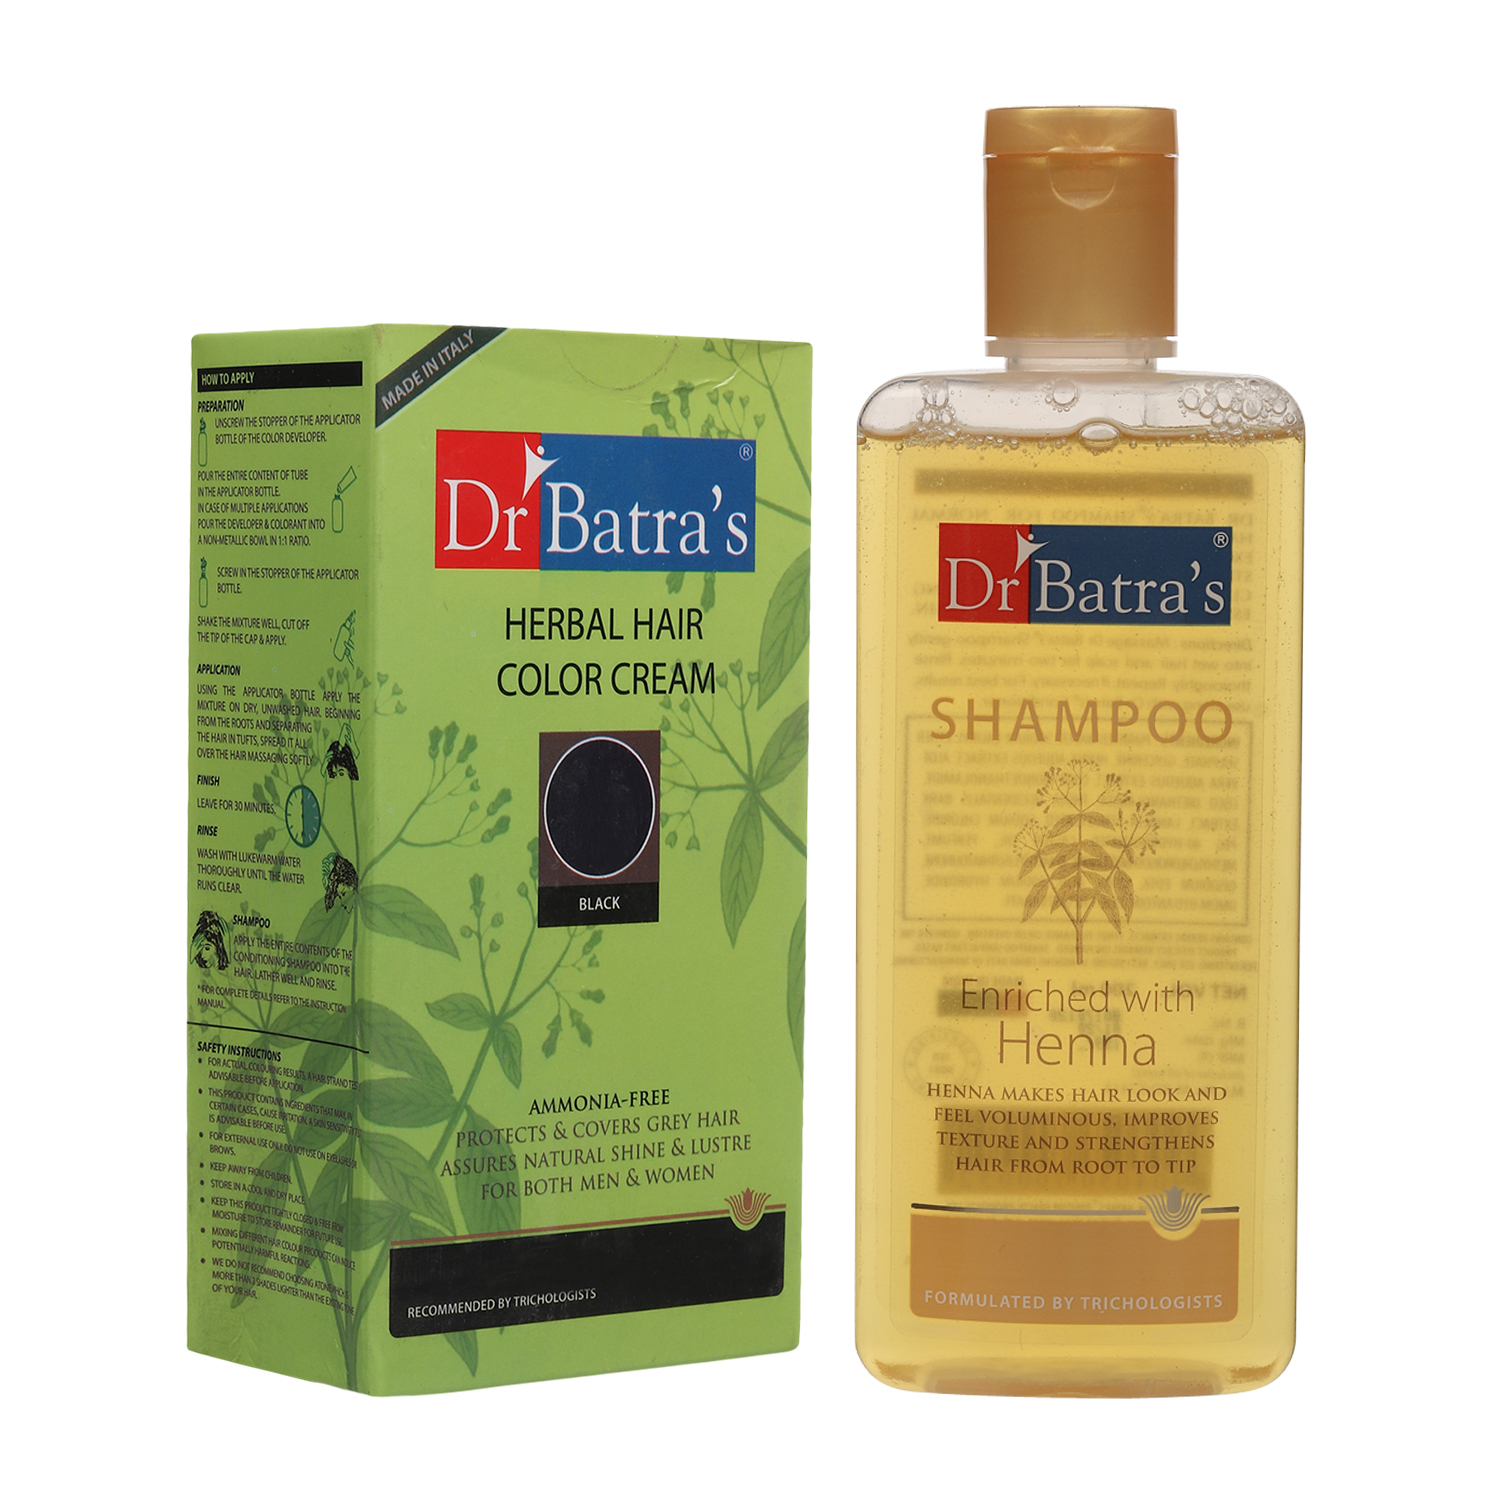 Dr Batra's | Dr Batra's Herbal Hair Color Cream 130 G and Normal Shampoo 200 ml (Pack of 2 Men and Women)